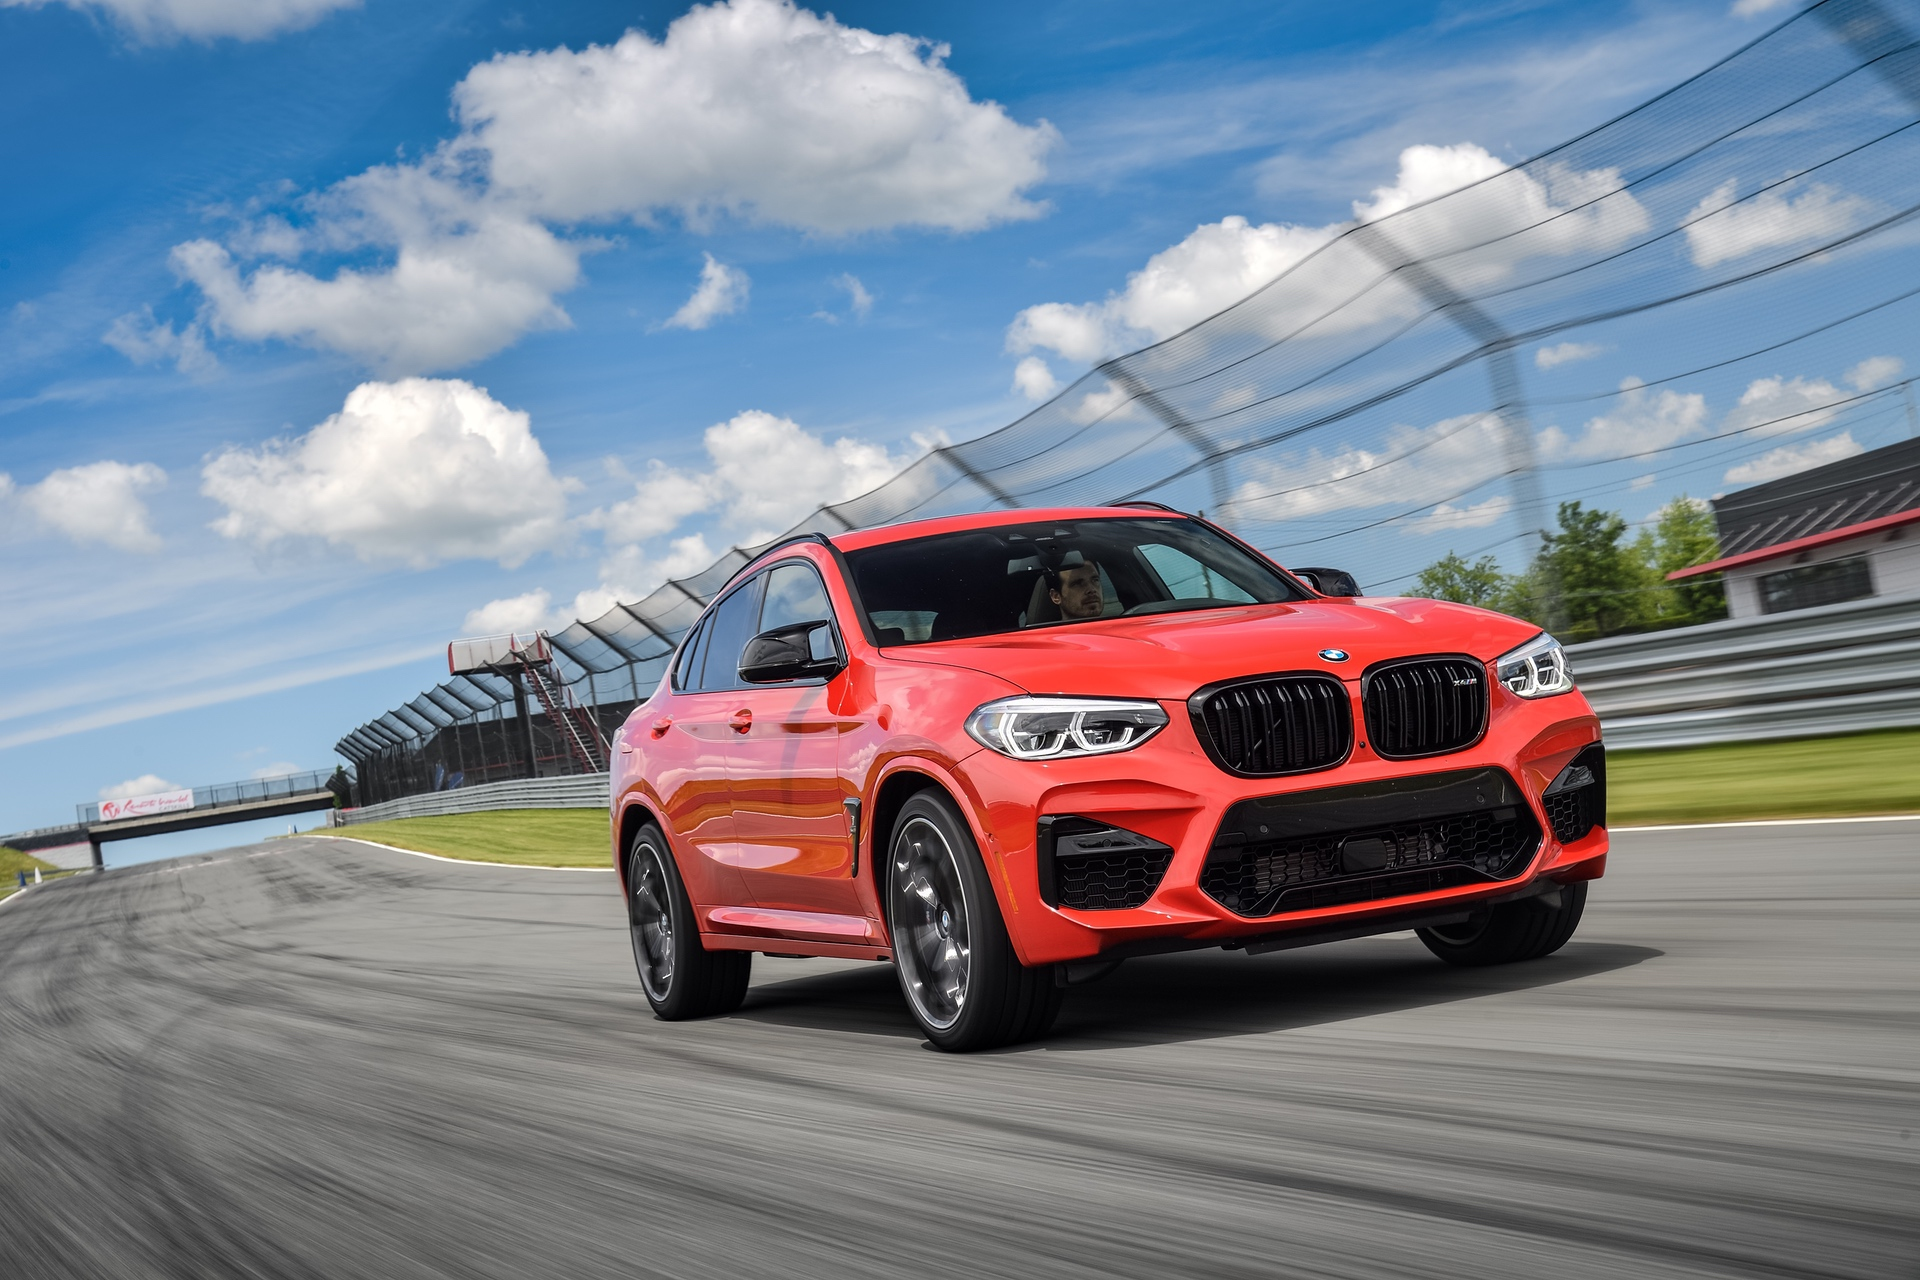 2020 BMW X4 M Competition Horatiu Boeriu 11